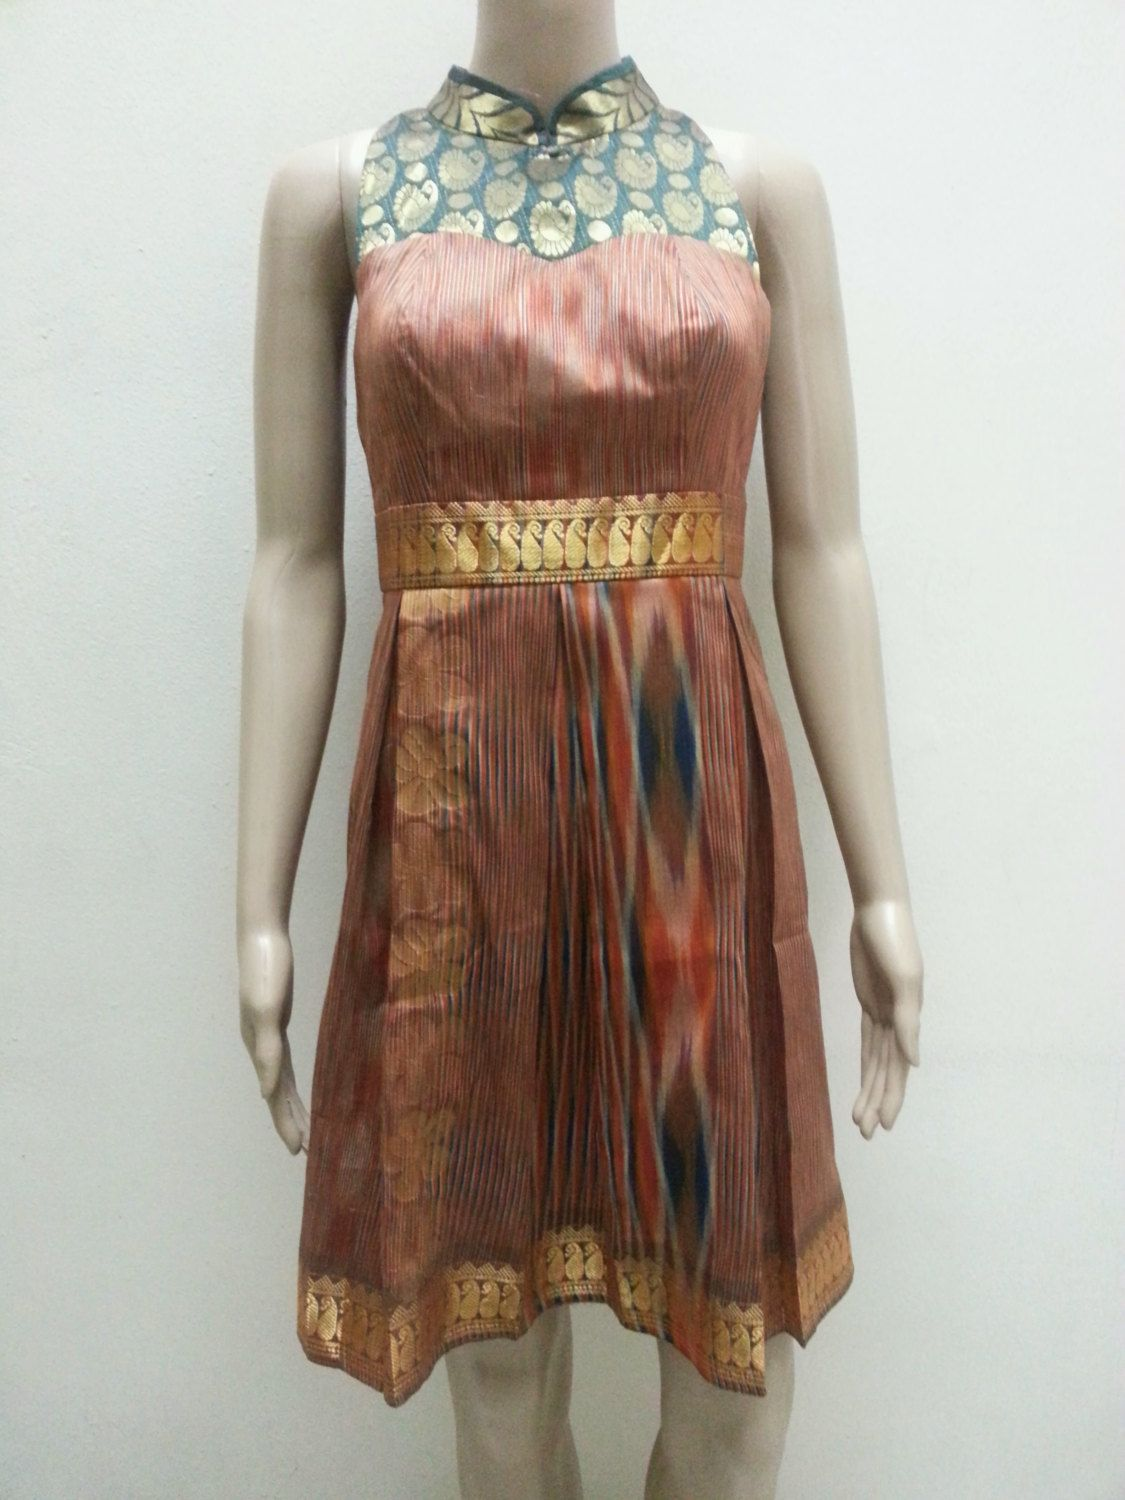 Modern Dress Made From Sari Fabrics by Gorjesboutique on ... - photo#43